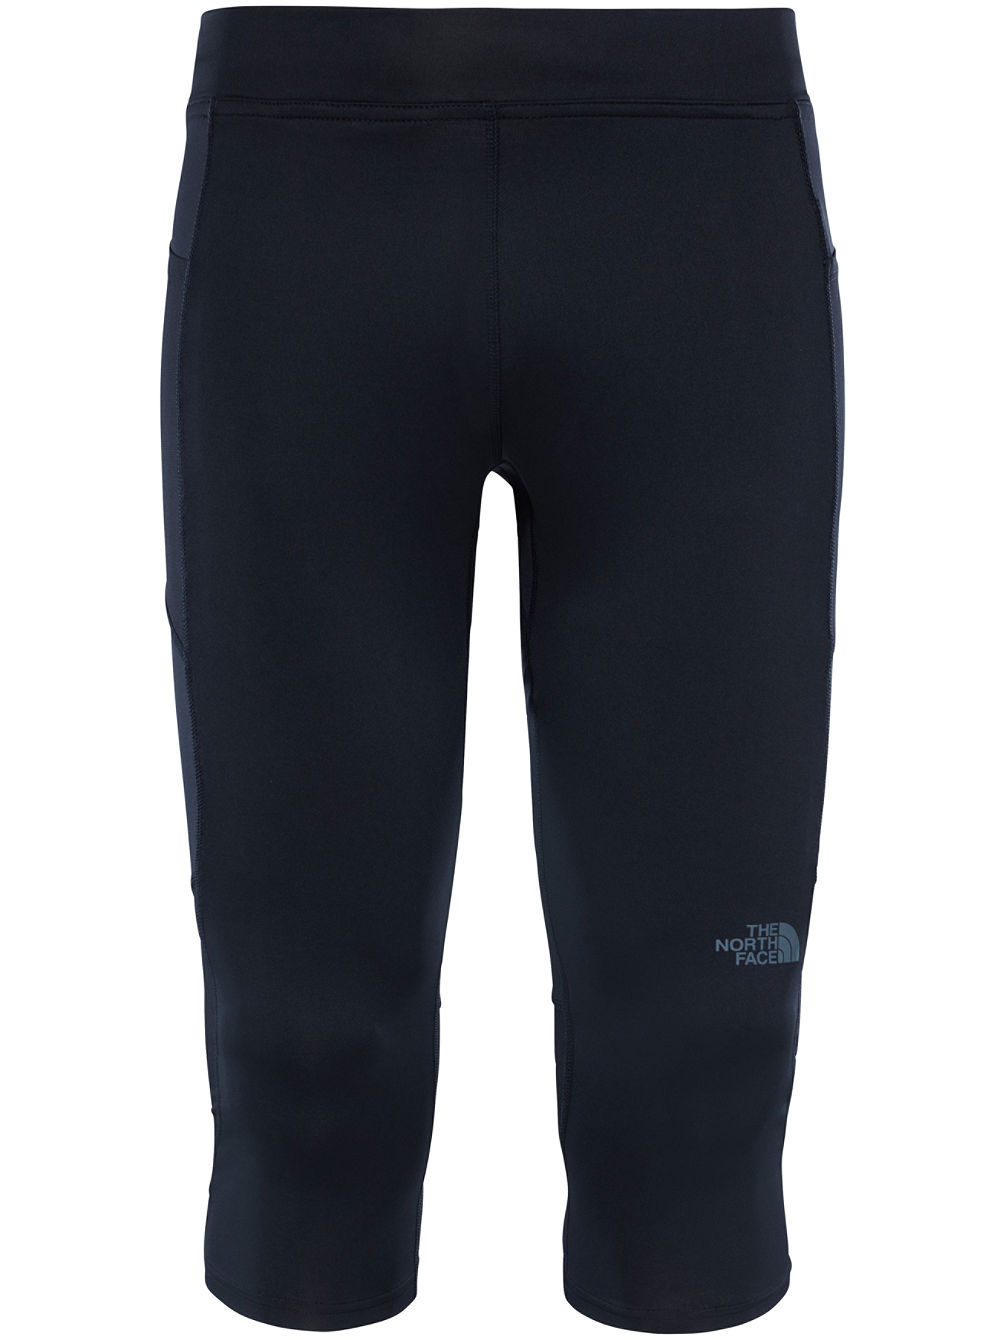 Ambition 3/4 Tight Tech Pants